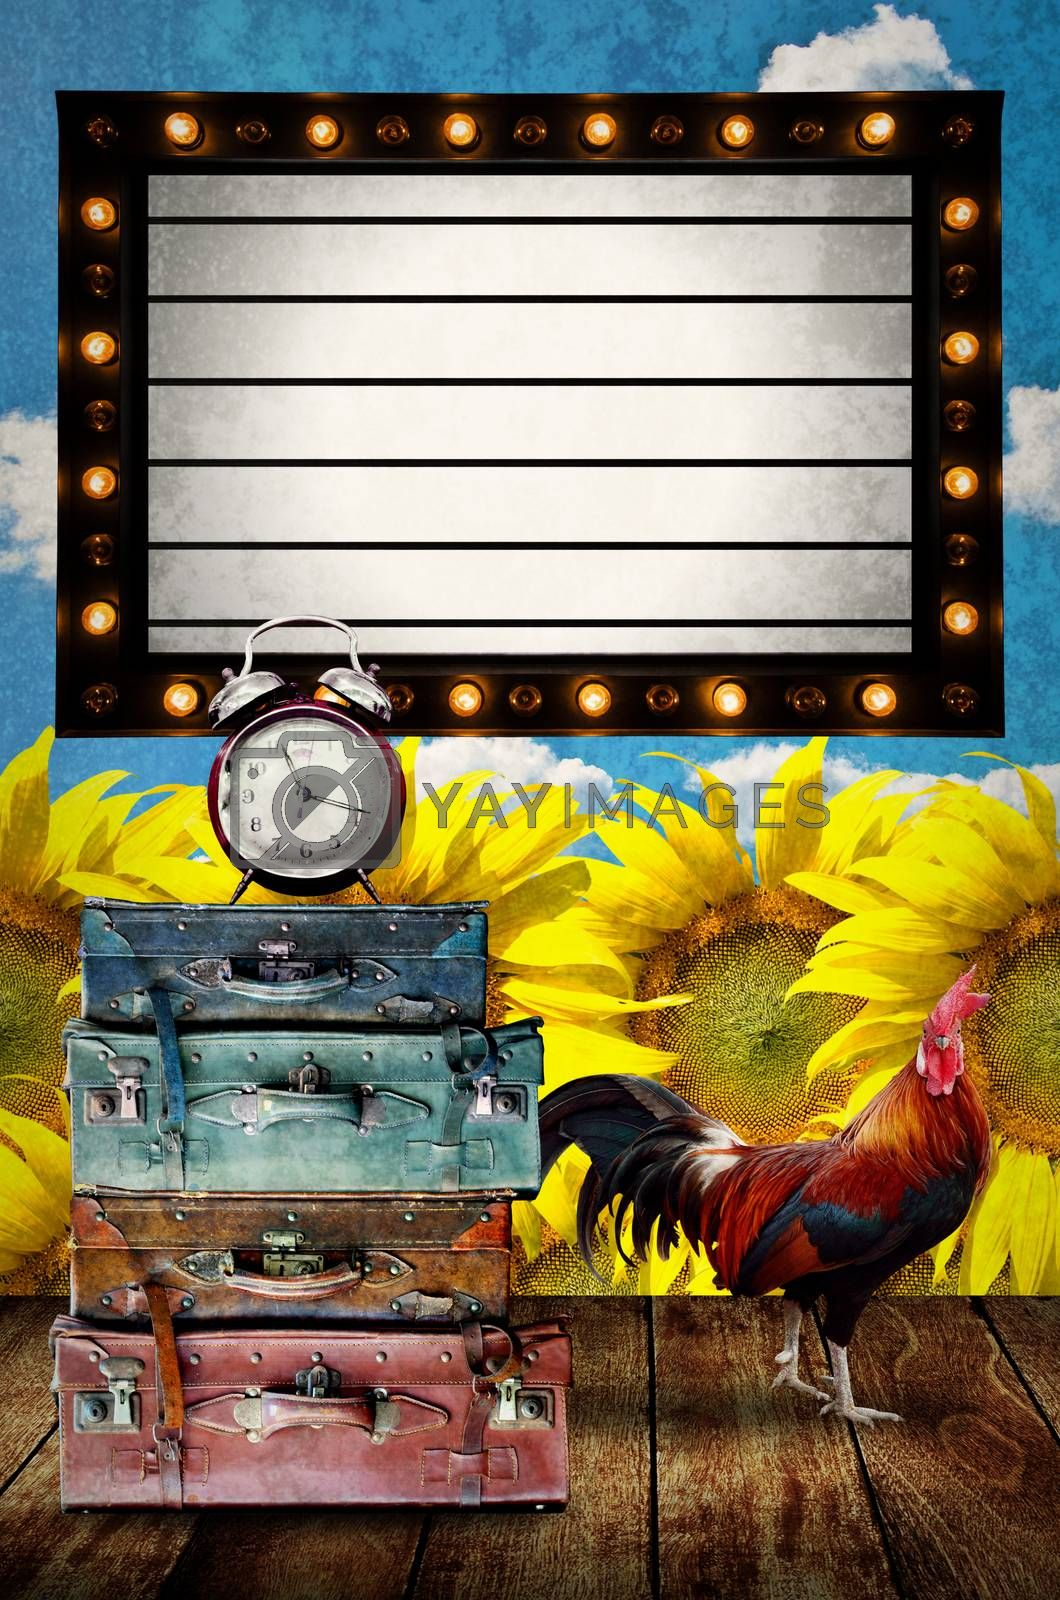 Vintage Light box program board with retro bag and chicken at sunflower farm